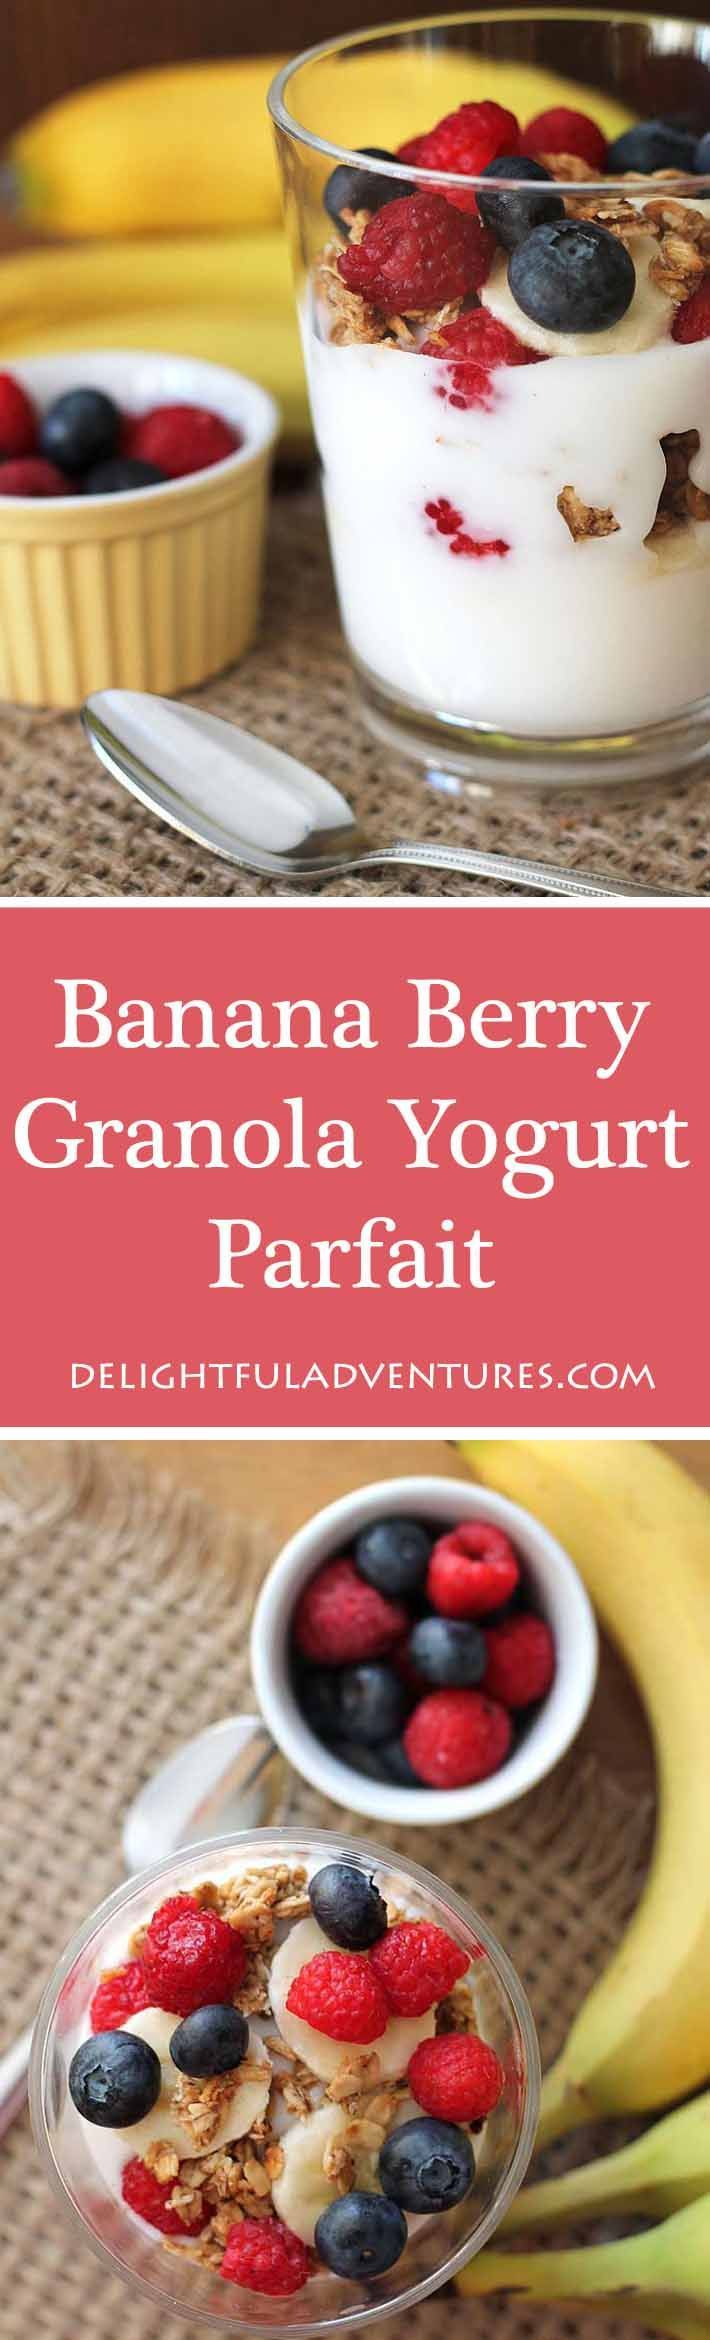 A Banana Berry Granola Yogurt Parfait is just what you need to start your day or to keep you going when you're looking for a healthy afternoon snack. #parfait #yogurtparfait #veganbreakfast #breakfastideas #berryparfait via @delighfuladv